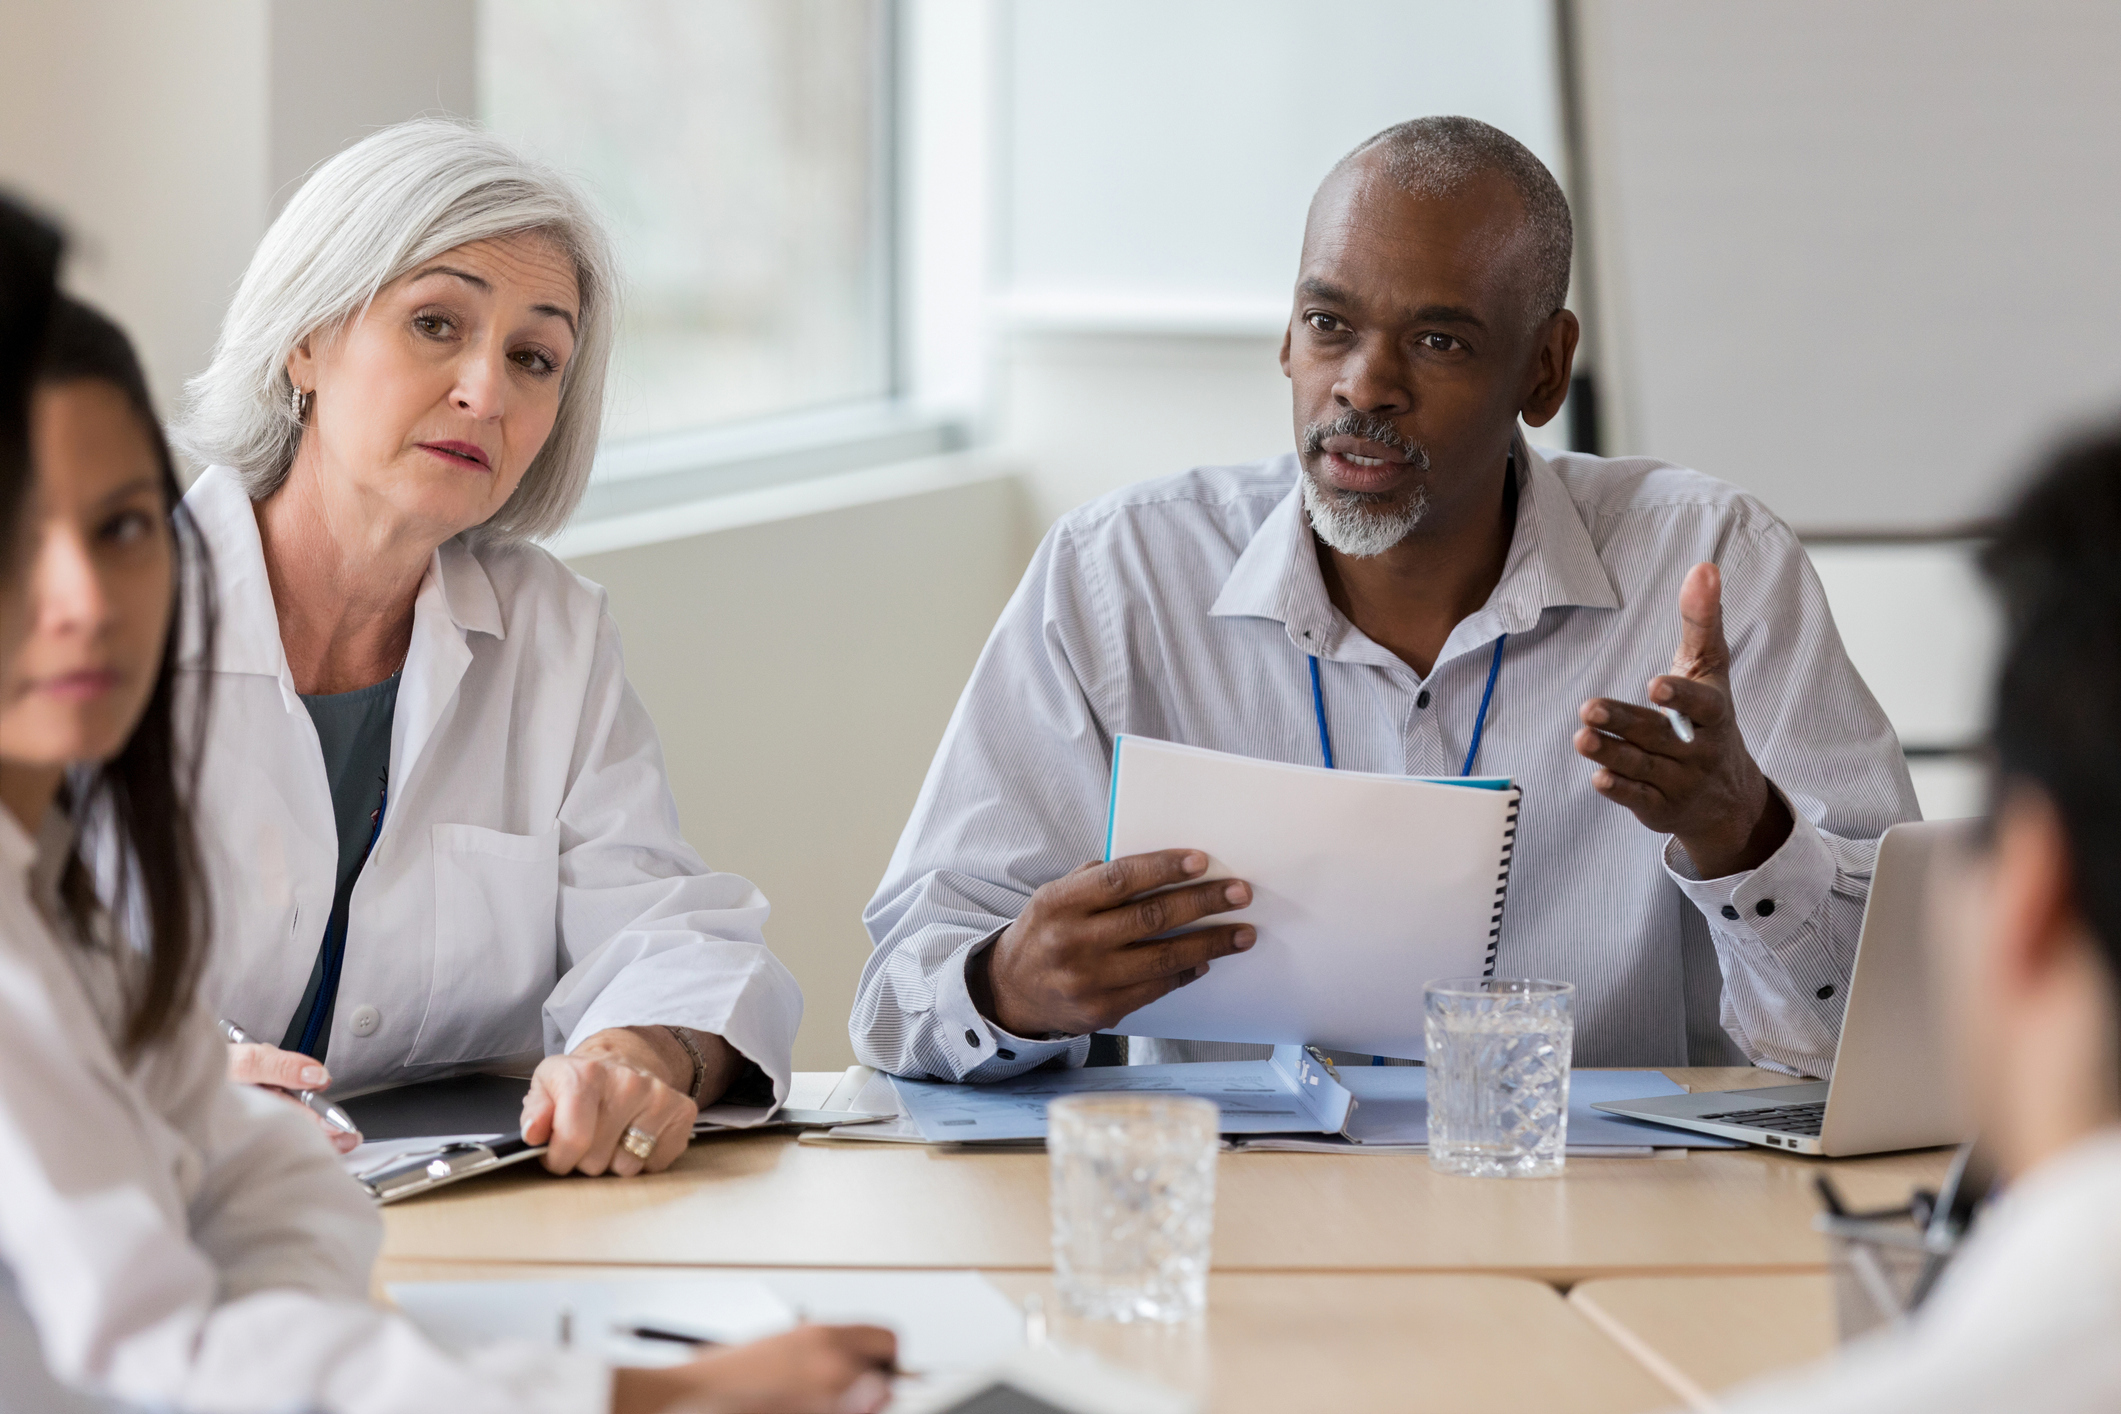 A senior businessman sits at a conference table during a medical staff meeting. He gestures as he speaks seriously with an unrecognizable coworker.